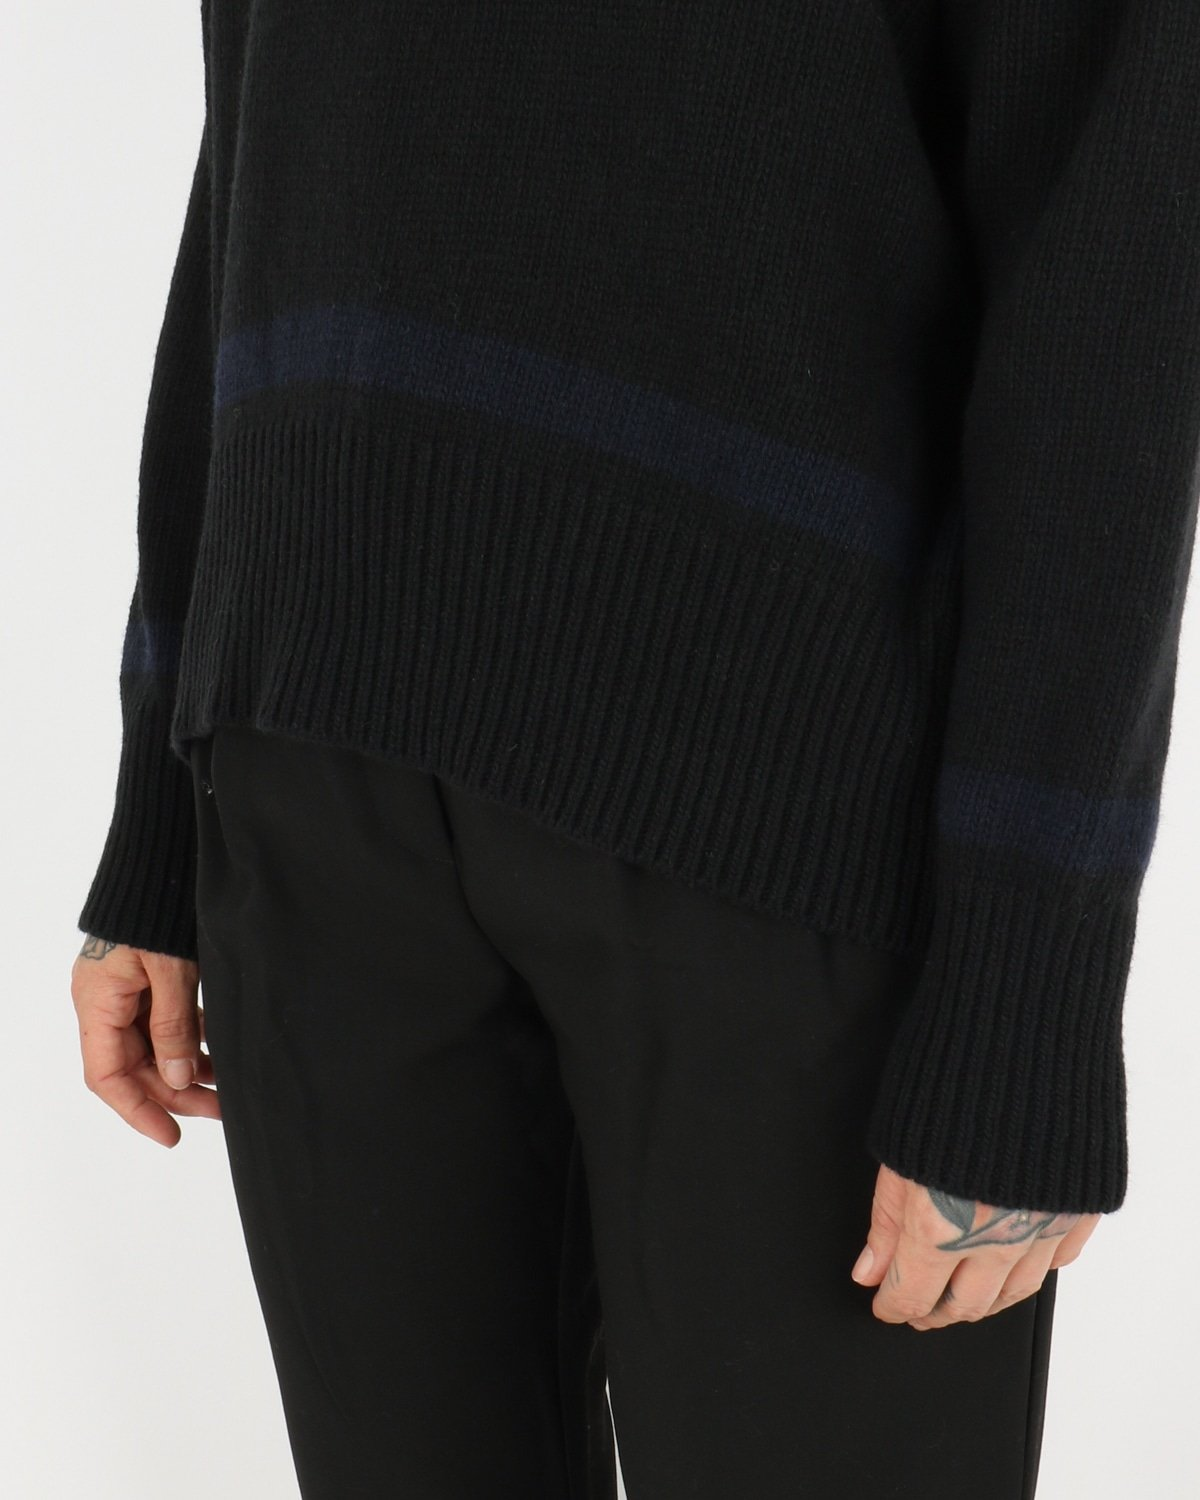 libertine libertine_husky knit_black blue_4_4